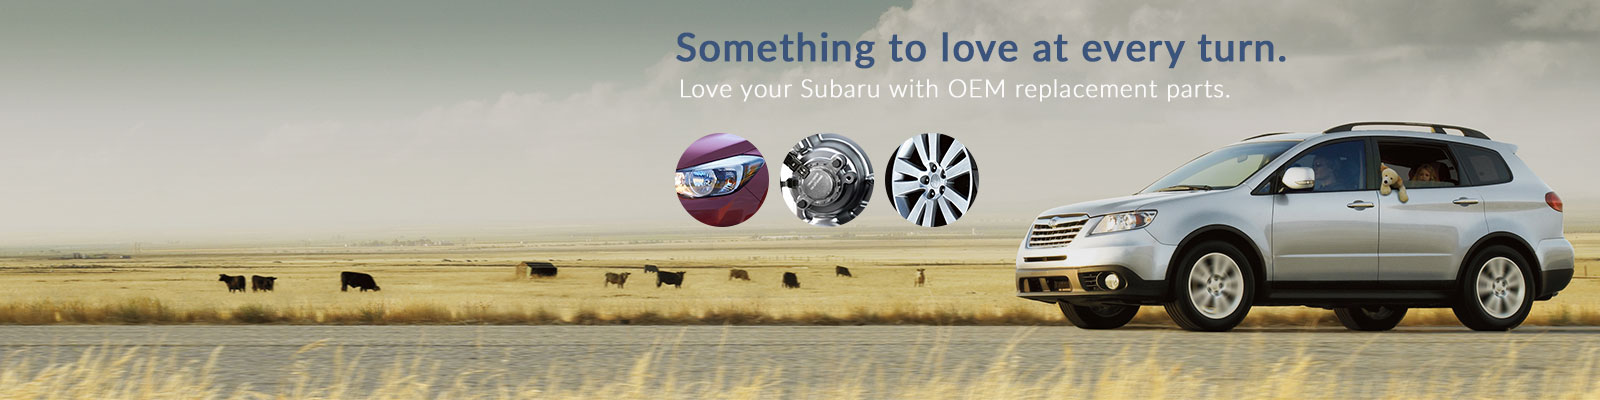 Subaru Parts Counter Banner 3